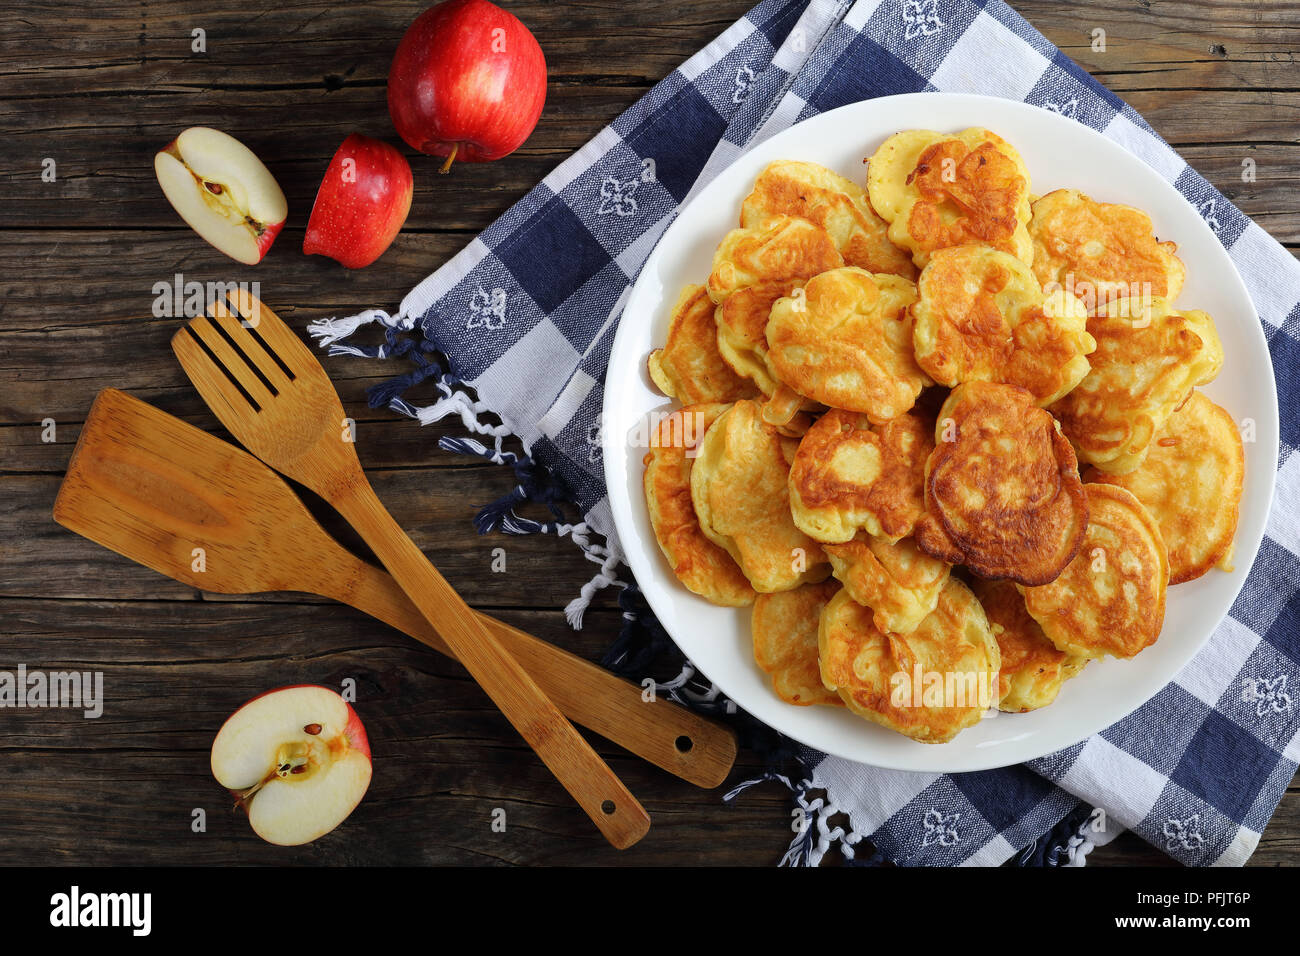 delicious Apple Greek Yogurt Pancakes - thick, fluffy and loaded with juicy pieces of fruits, on white plate on old dark wooden table with spatulas an - Stock Image